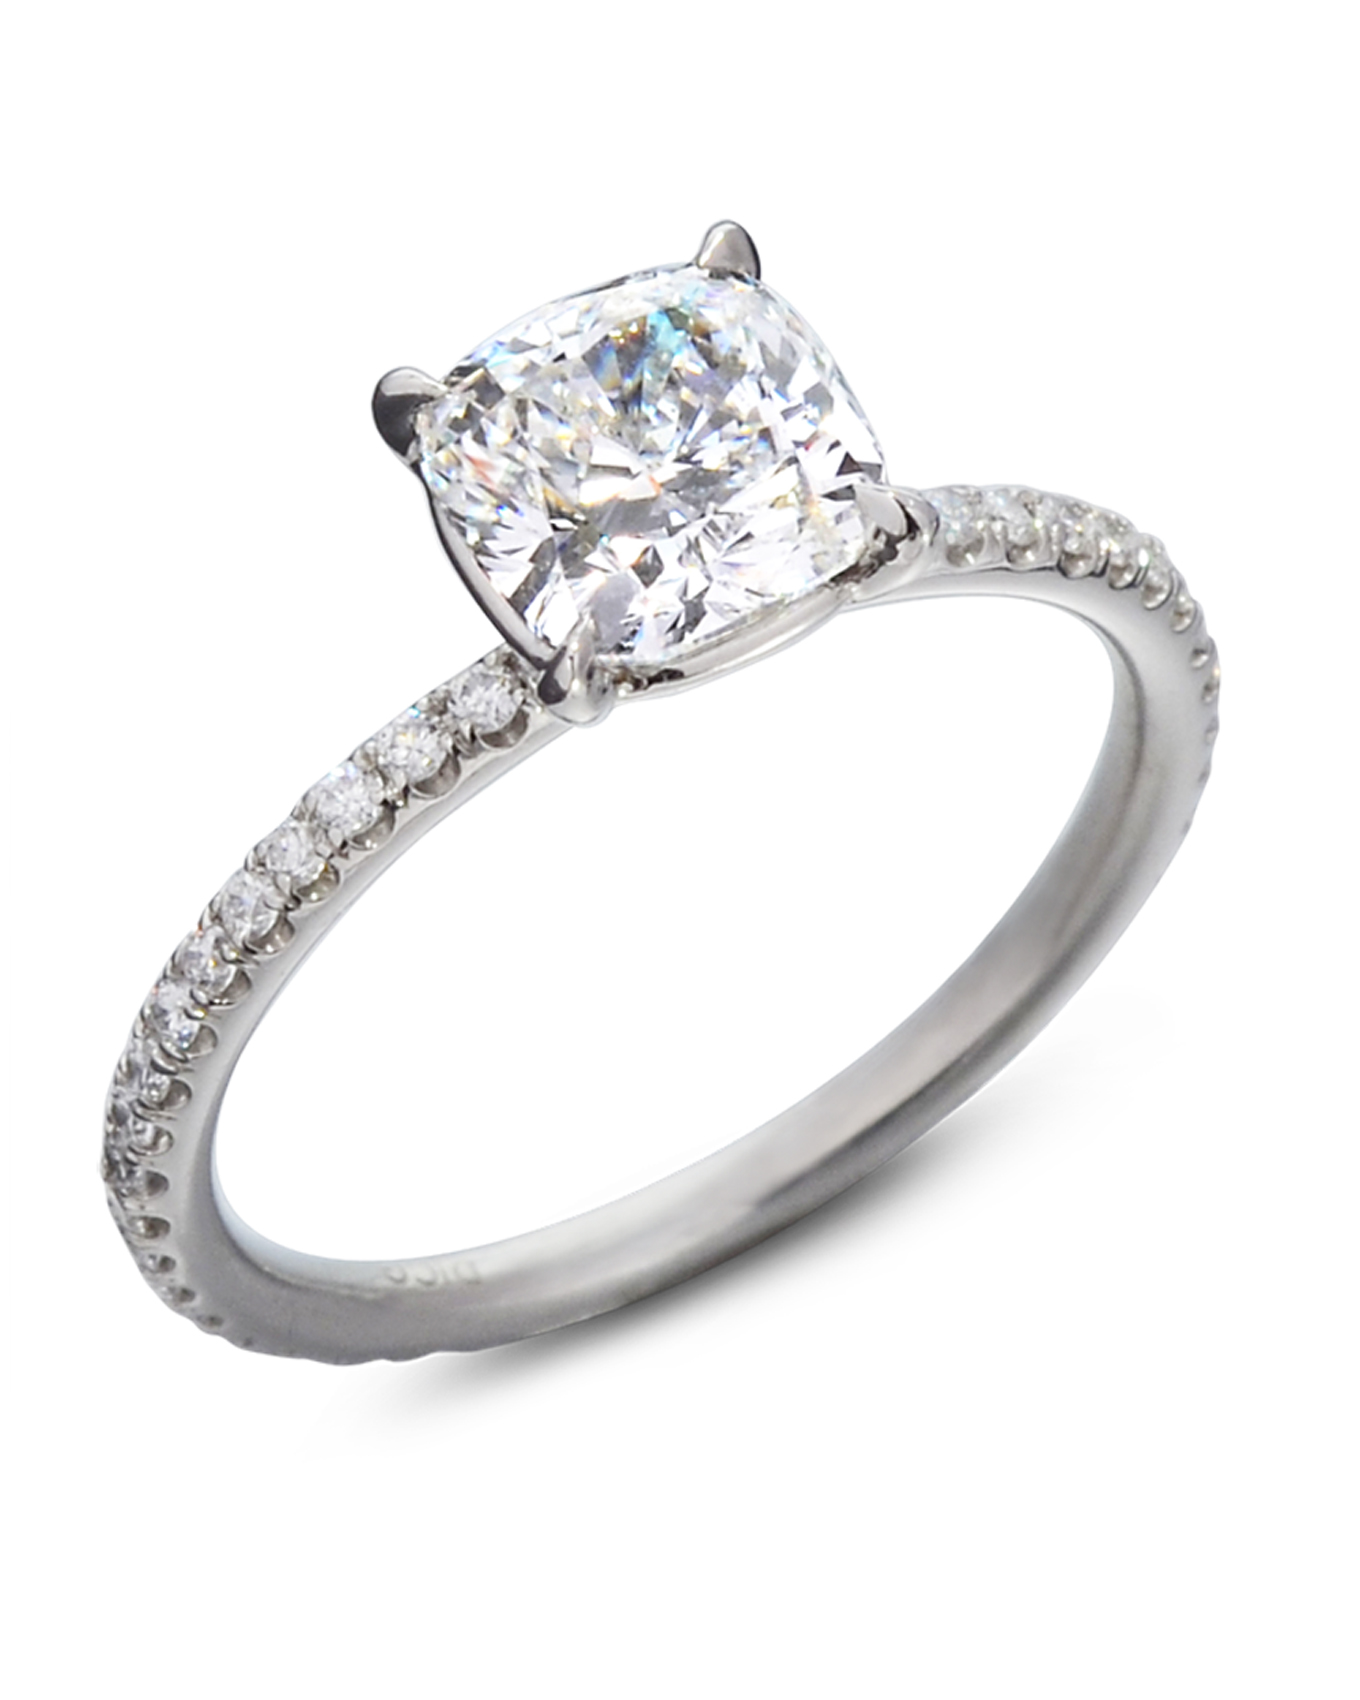 Cushion Cut Diamond Solitaire Engagement Ring  Turgeon Raine. Color Rings. Temporary Engagement Rings. Rare Stone Engagement Rings. Cushion Cut Engagement Wedding Rings